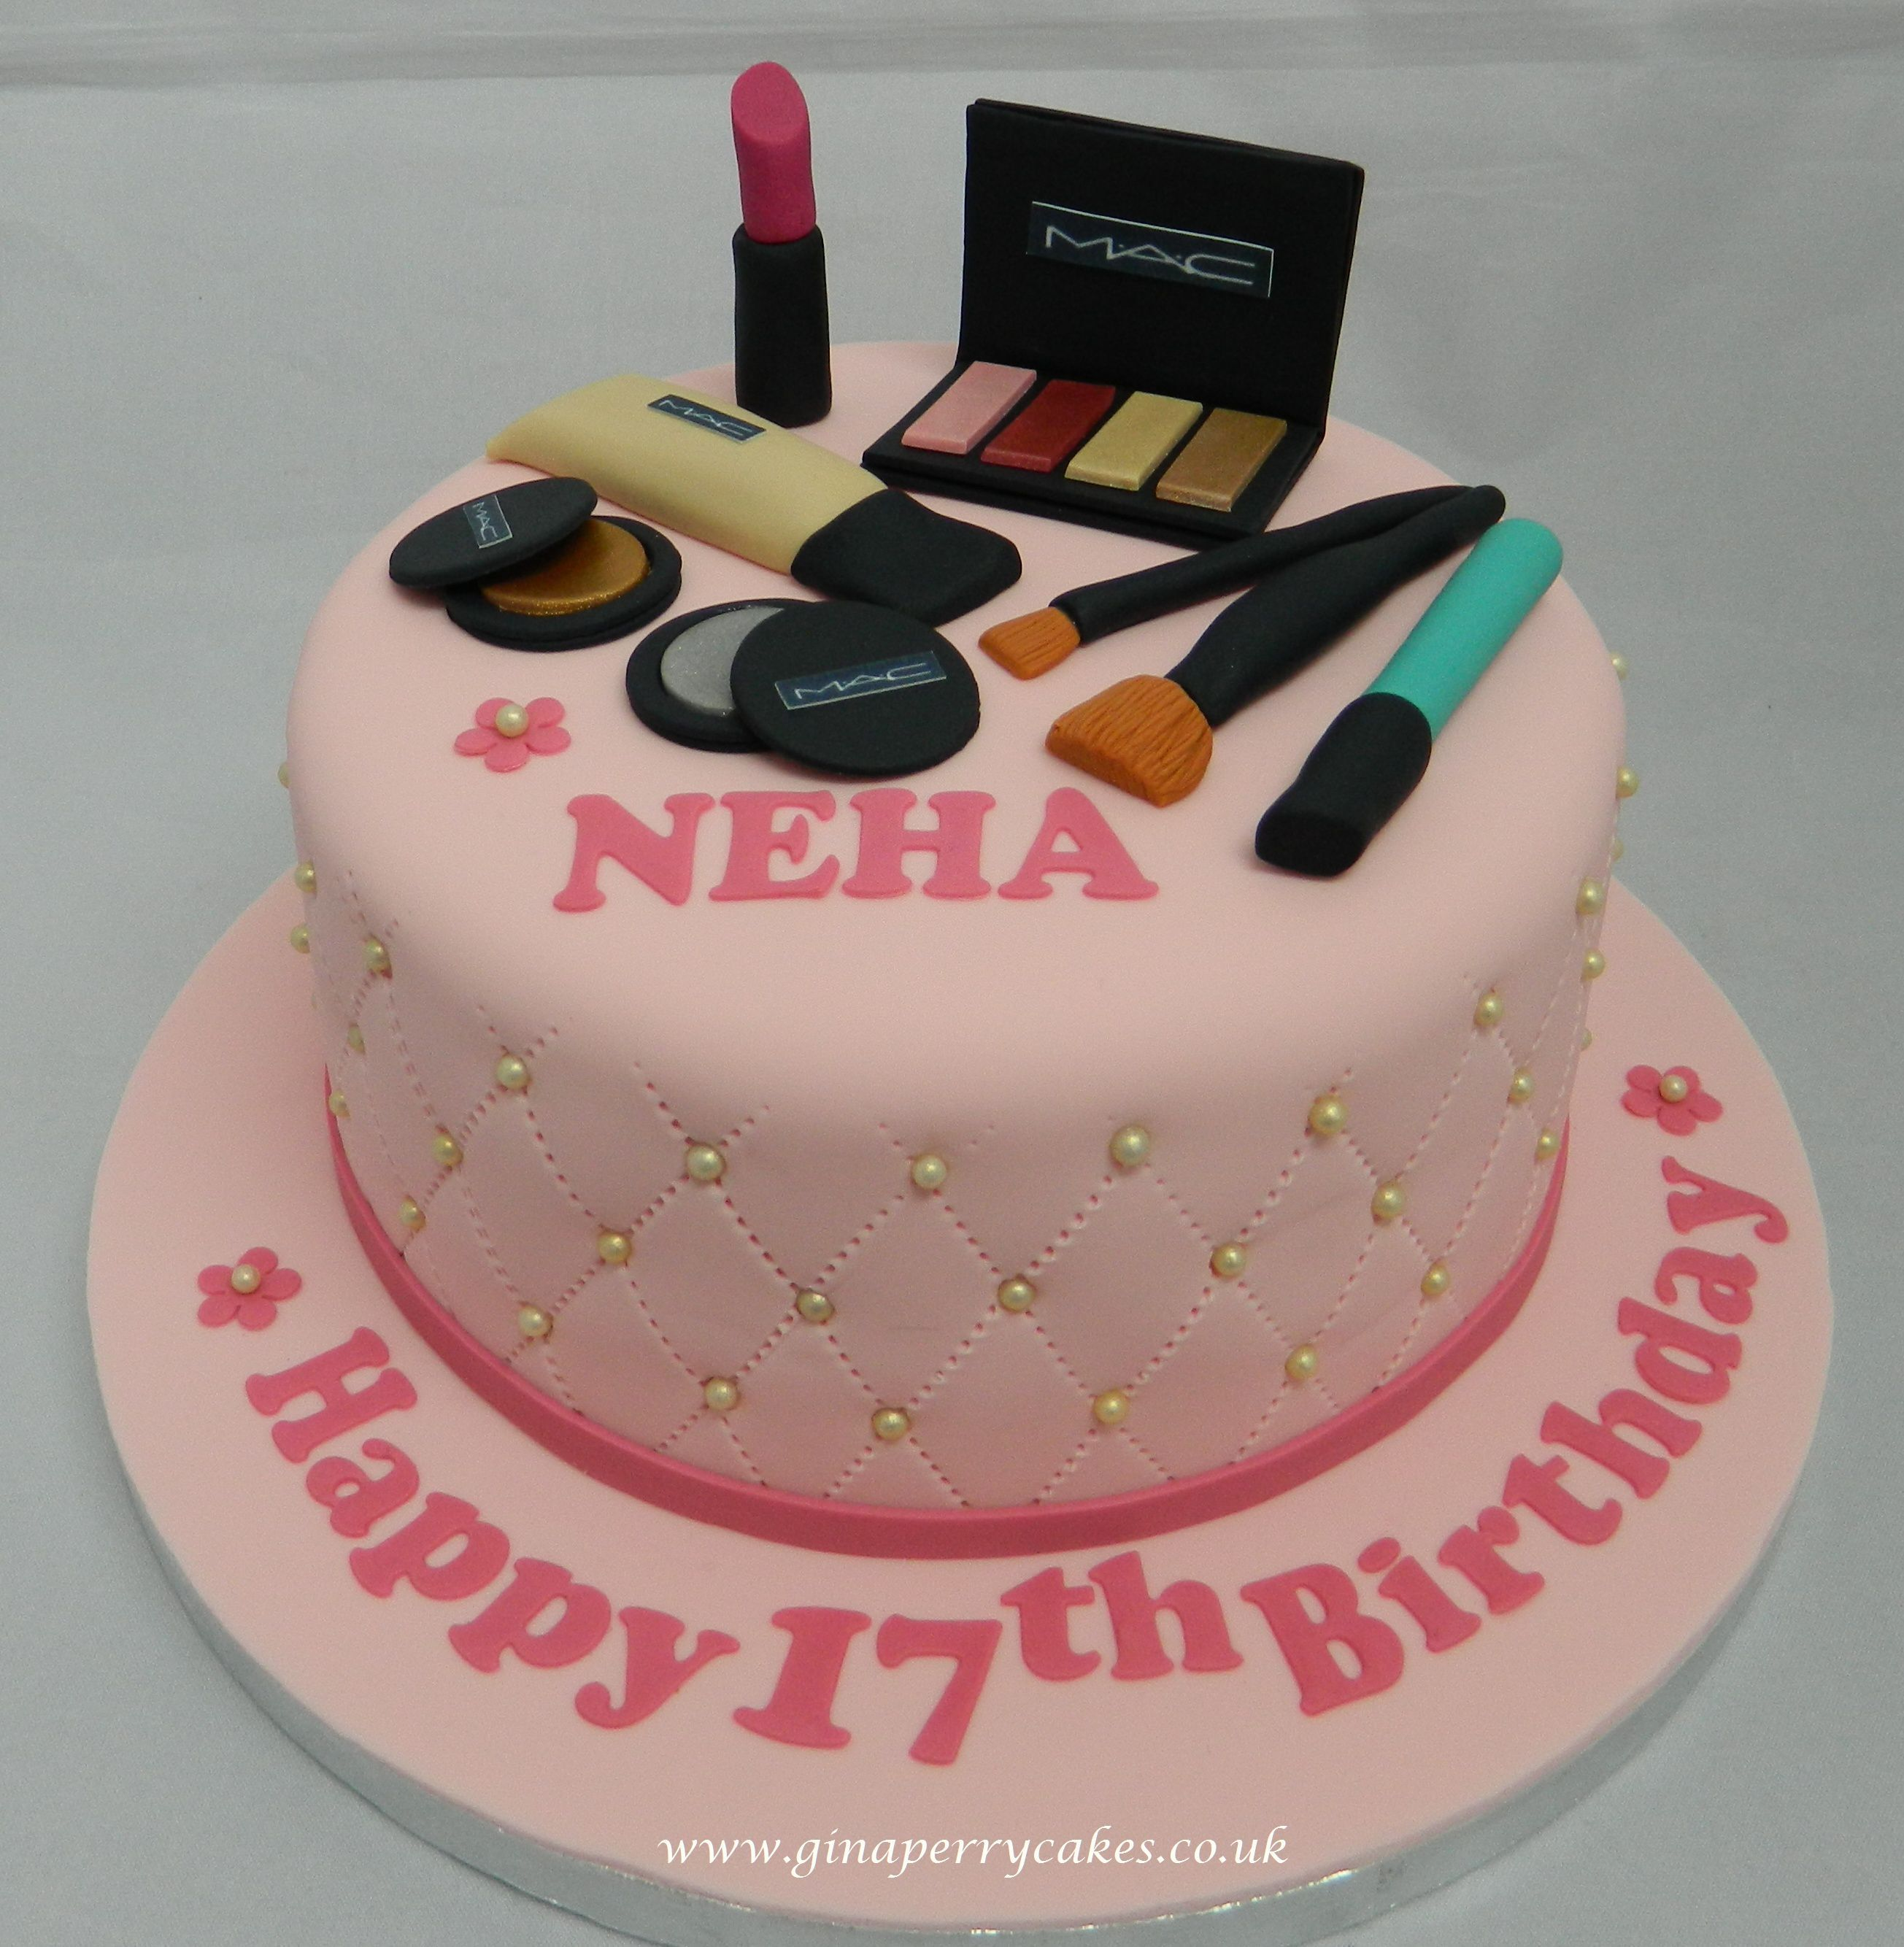 Make up themed birthday cake for a teenager My Celebration Cakes